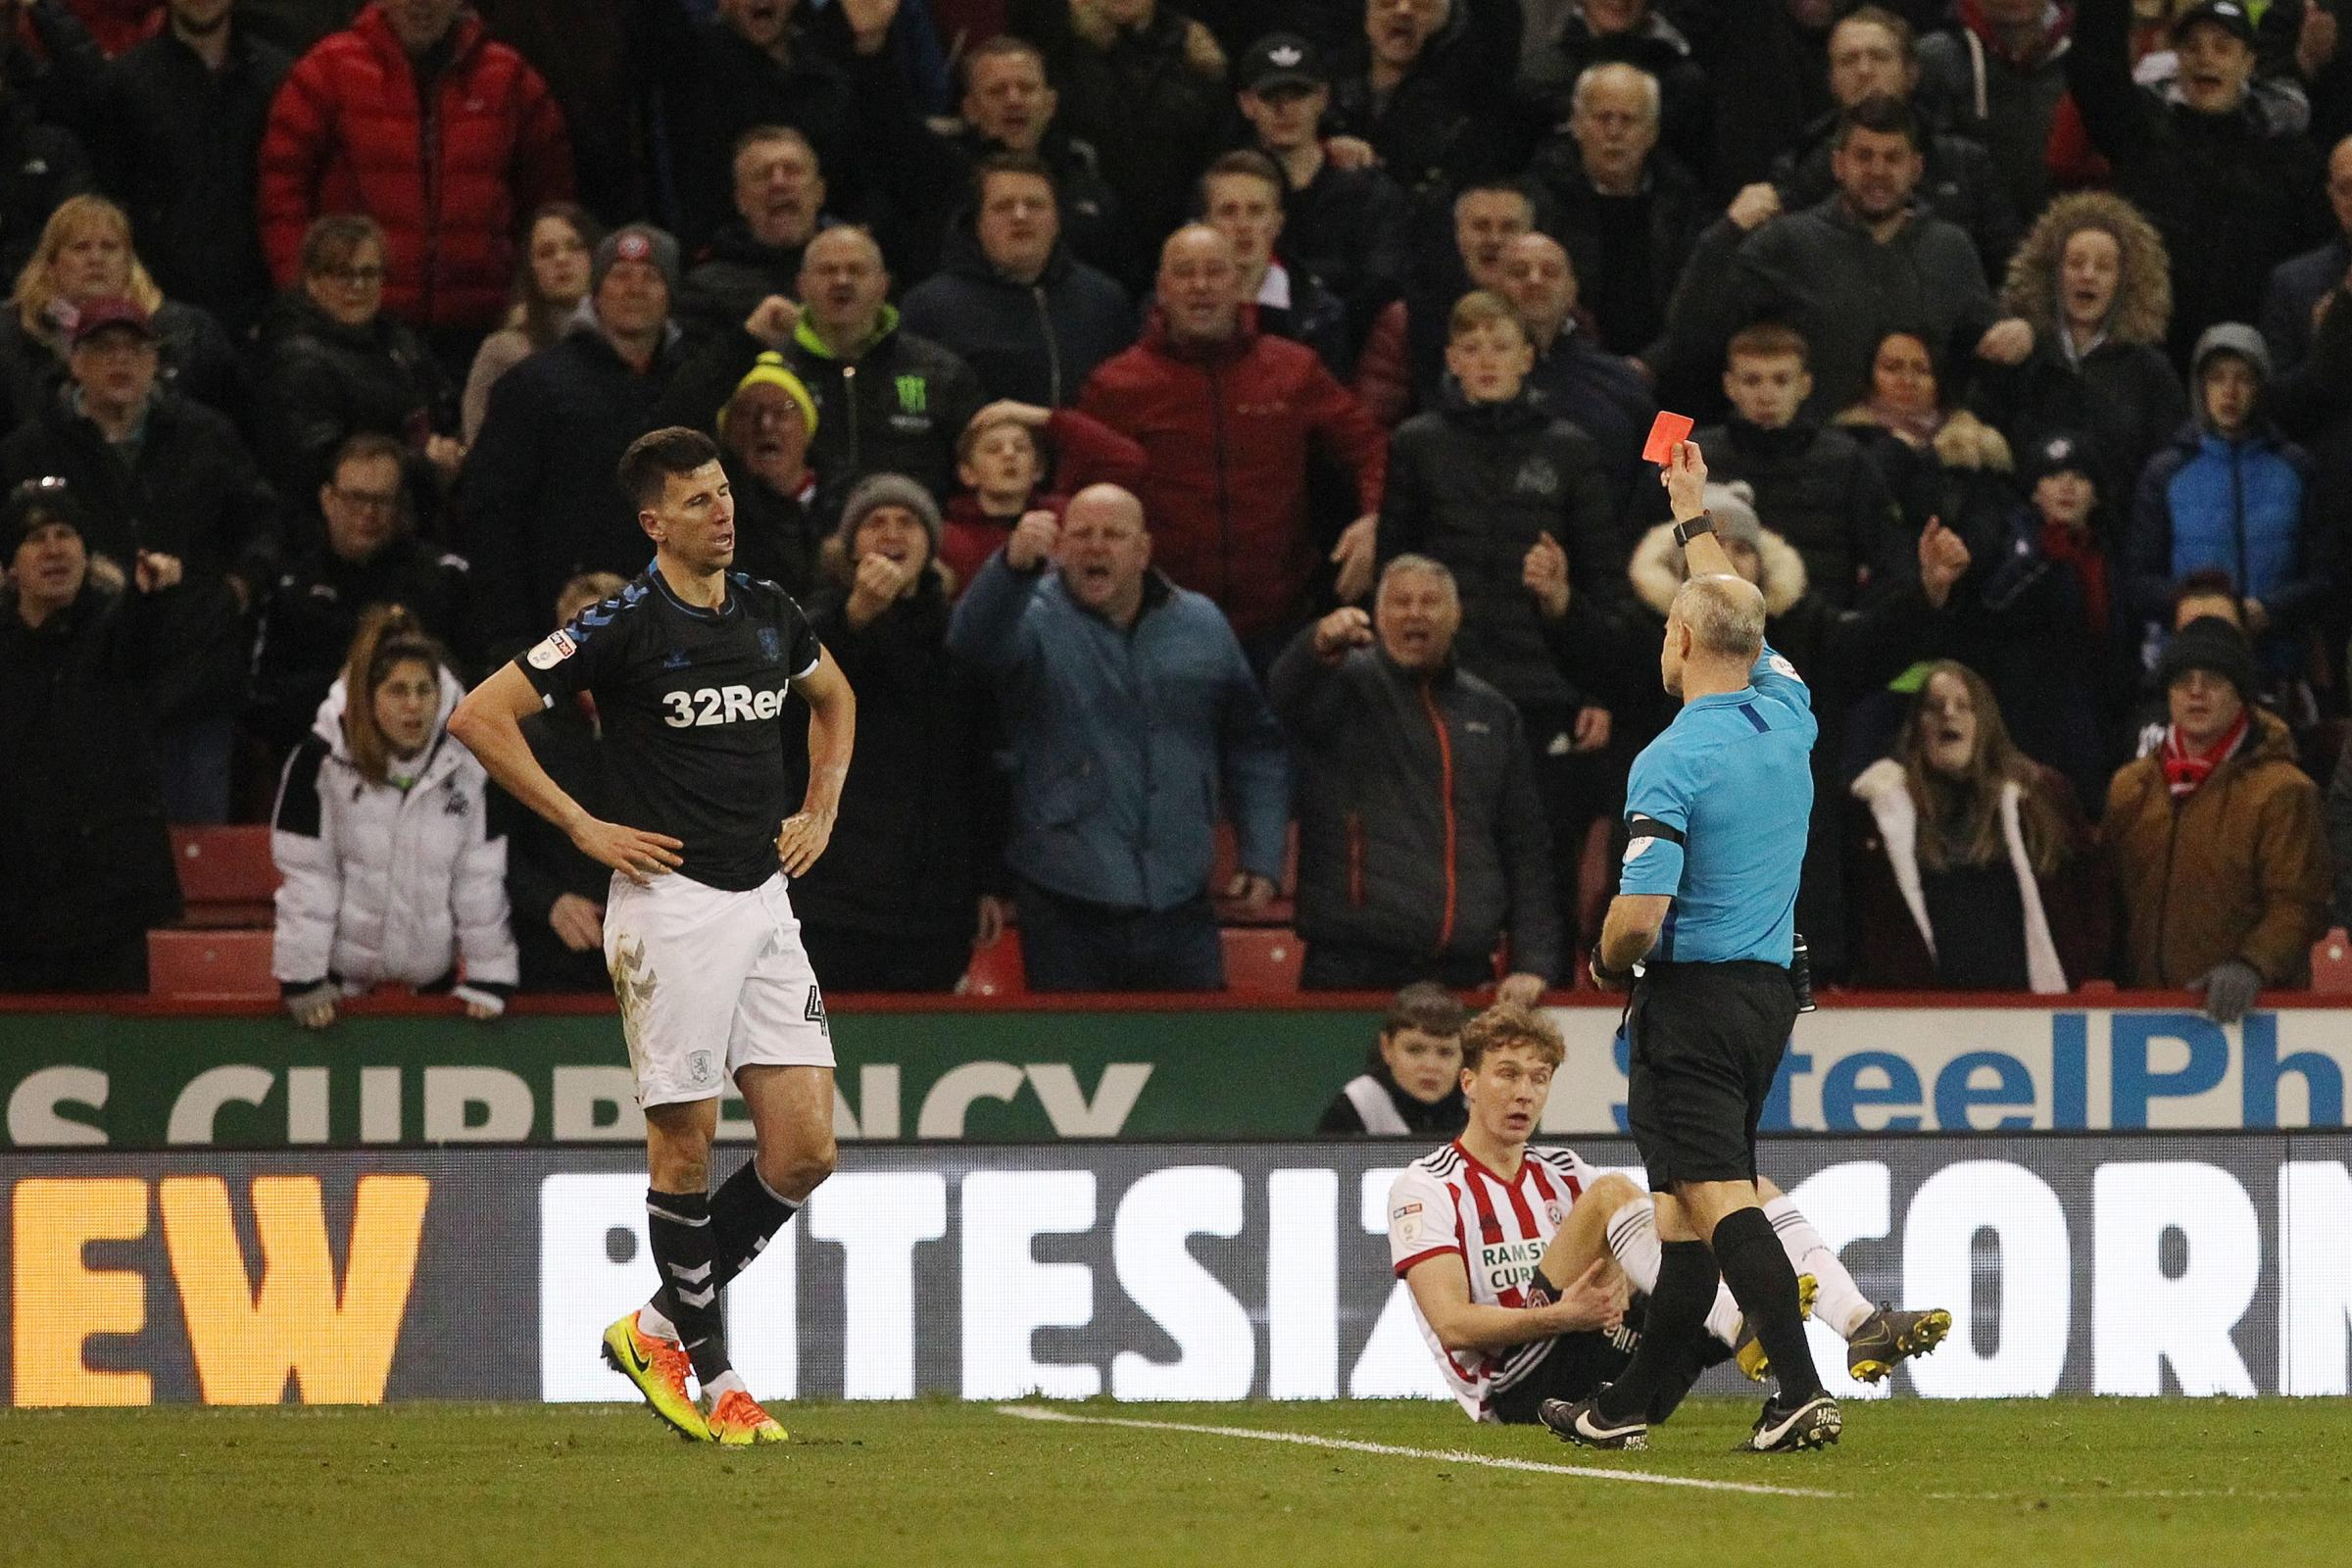 History repeating itself as ten-man Boro slip to damaging defeat at Sheffield United